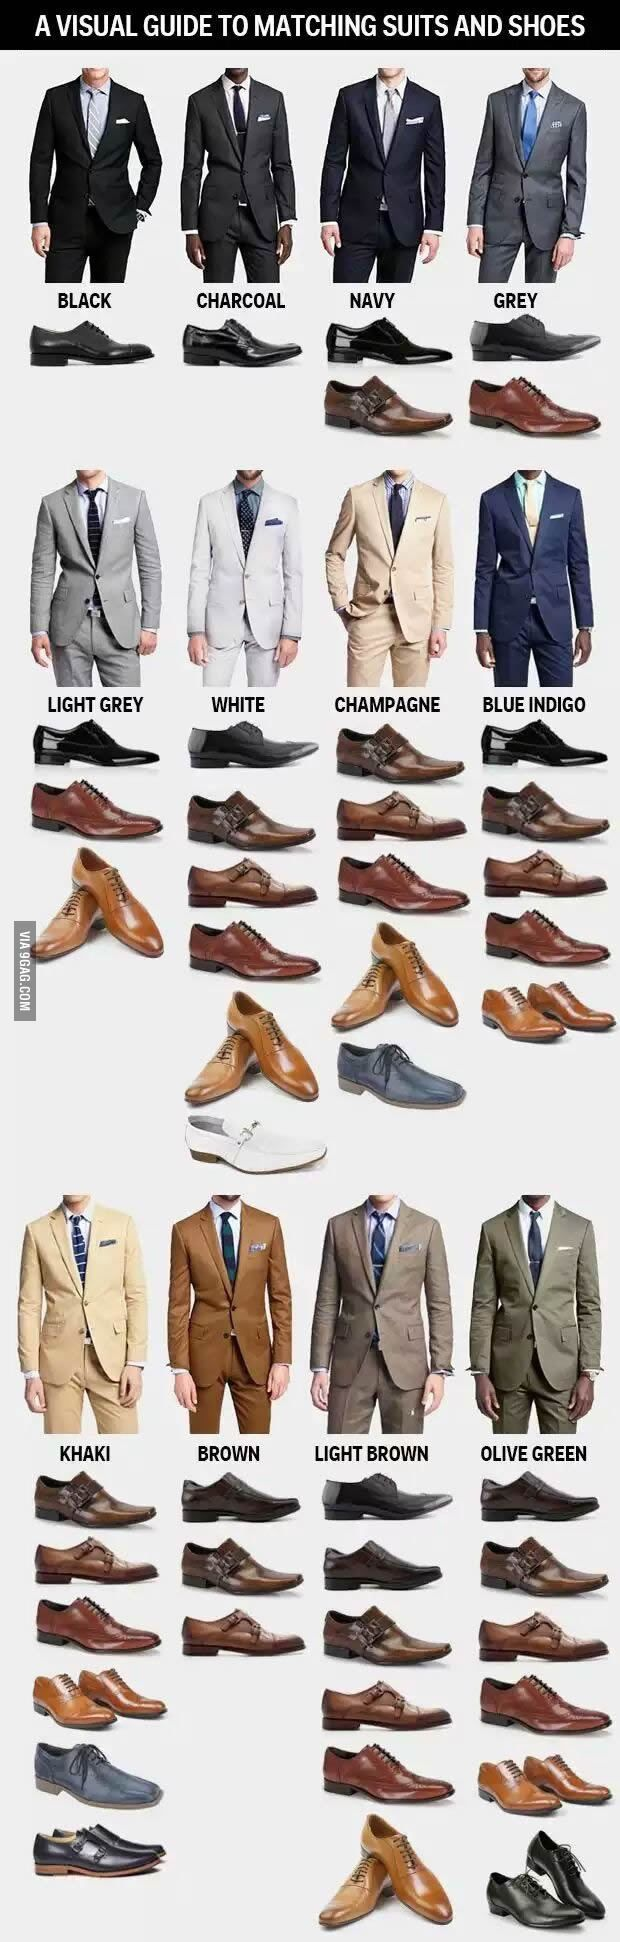 guide to matching suits and shoes